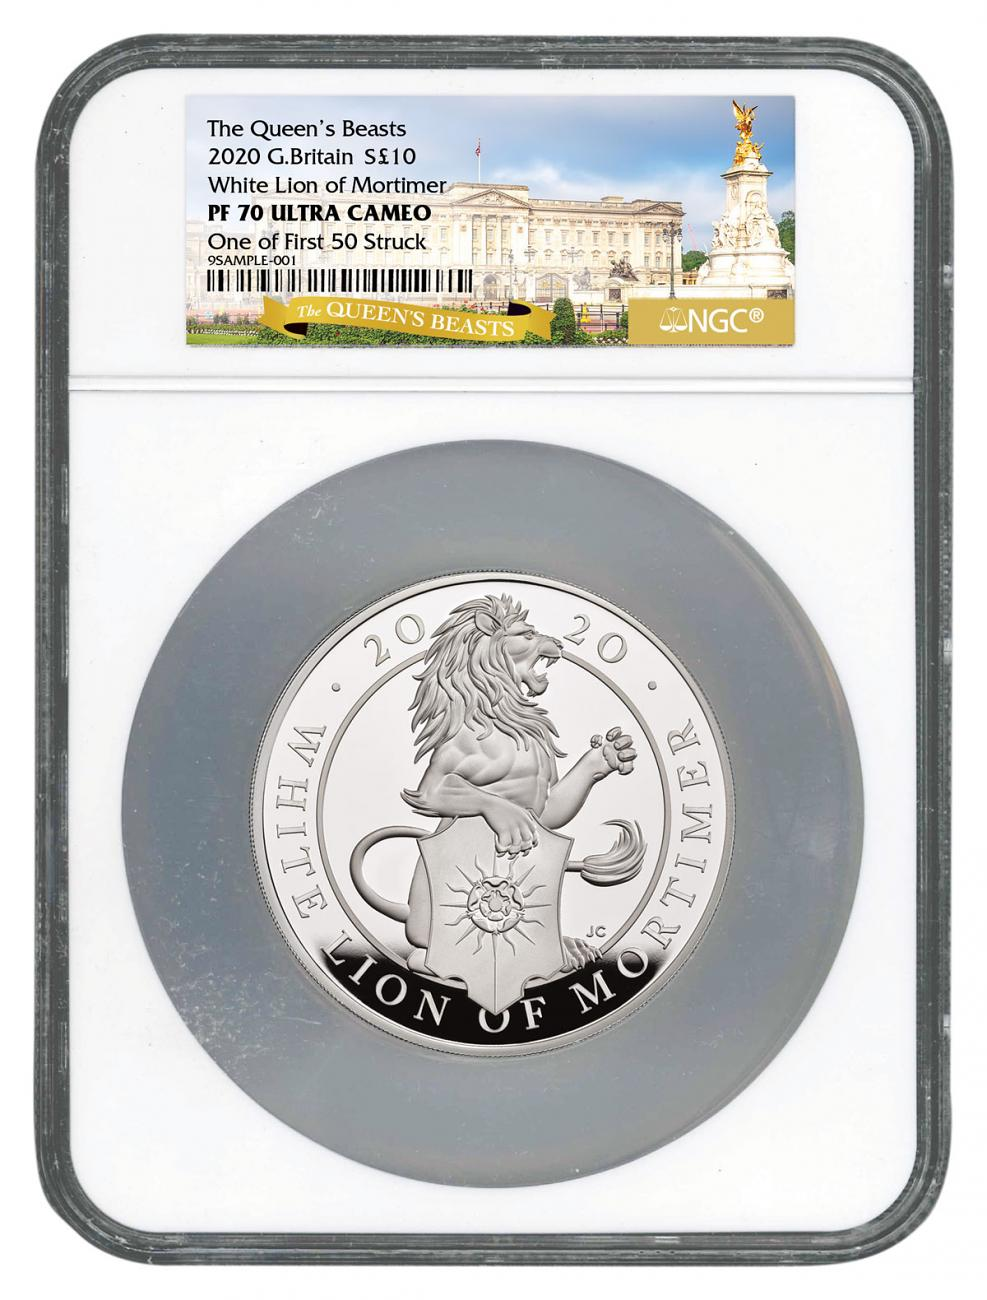 2020 Great Britain 10 oz Silver Queen's Beasts White Lion of Mortimer £10 Coin Scarce and Unique Coin Division NGC PF70 UC One of First 50 Struck Storycard & COA